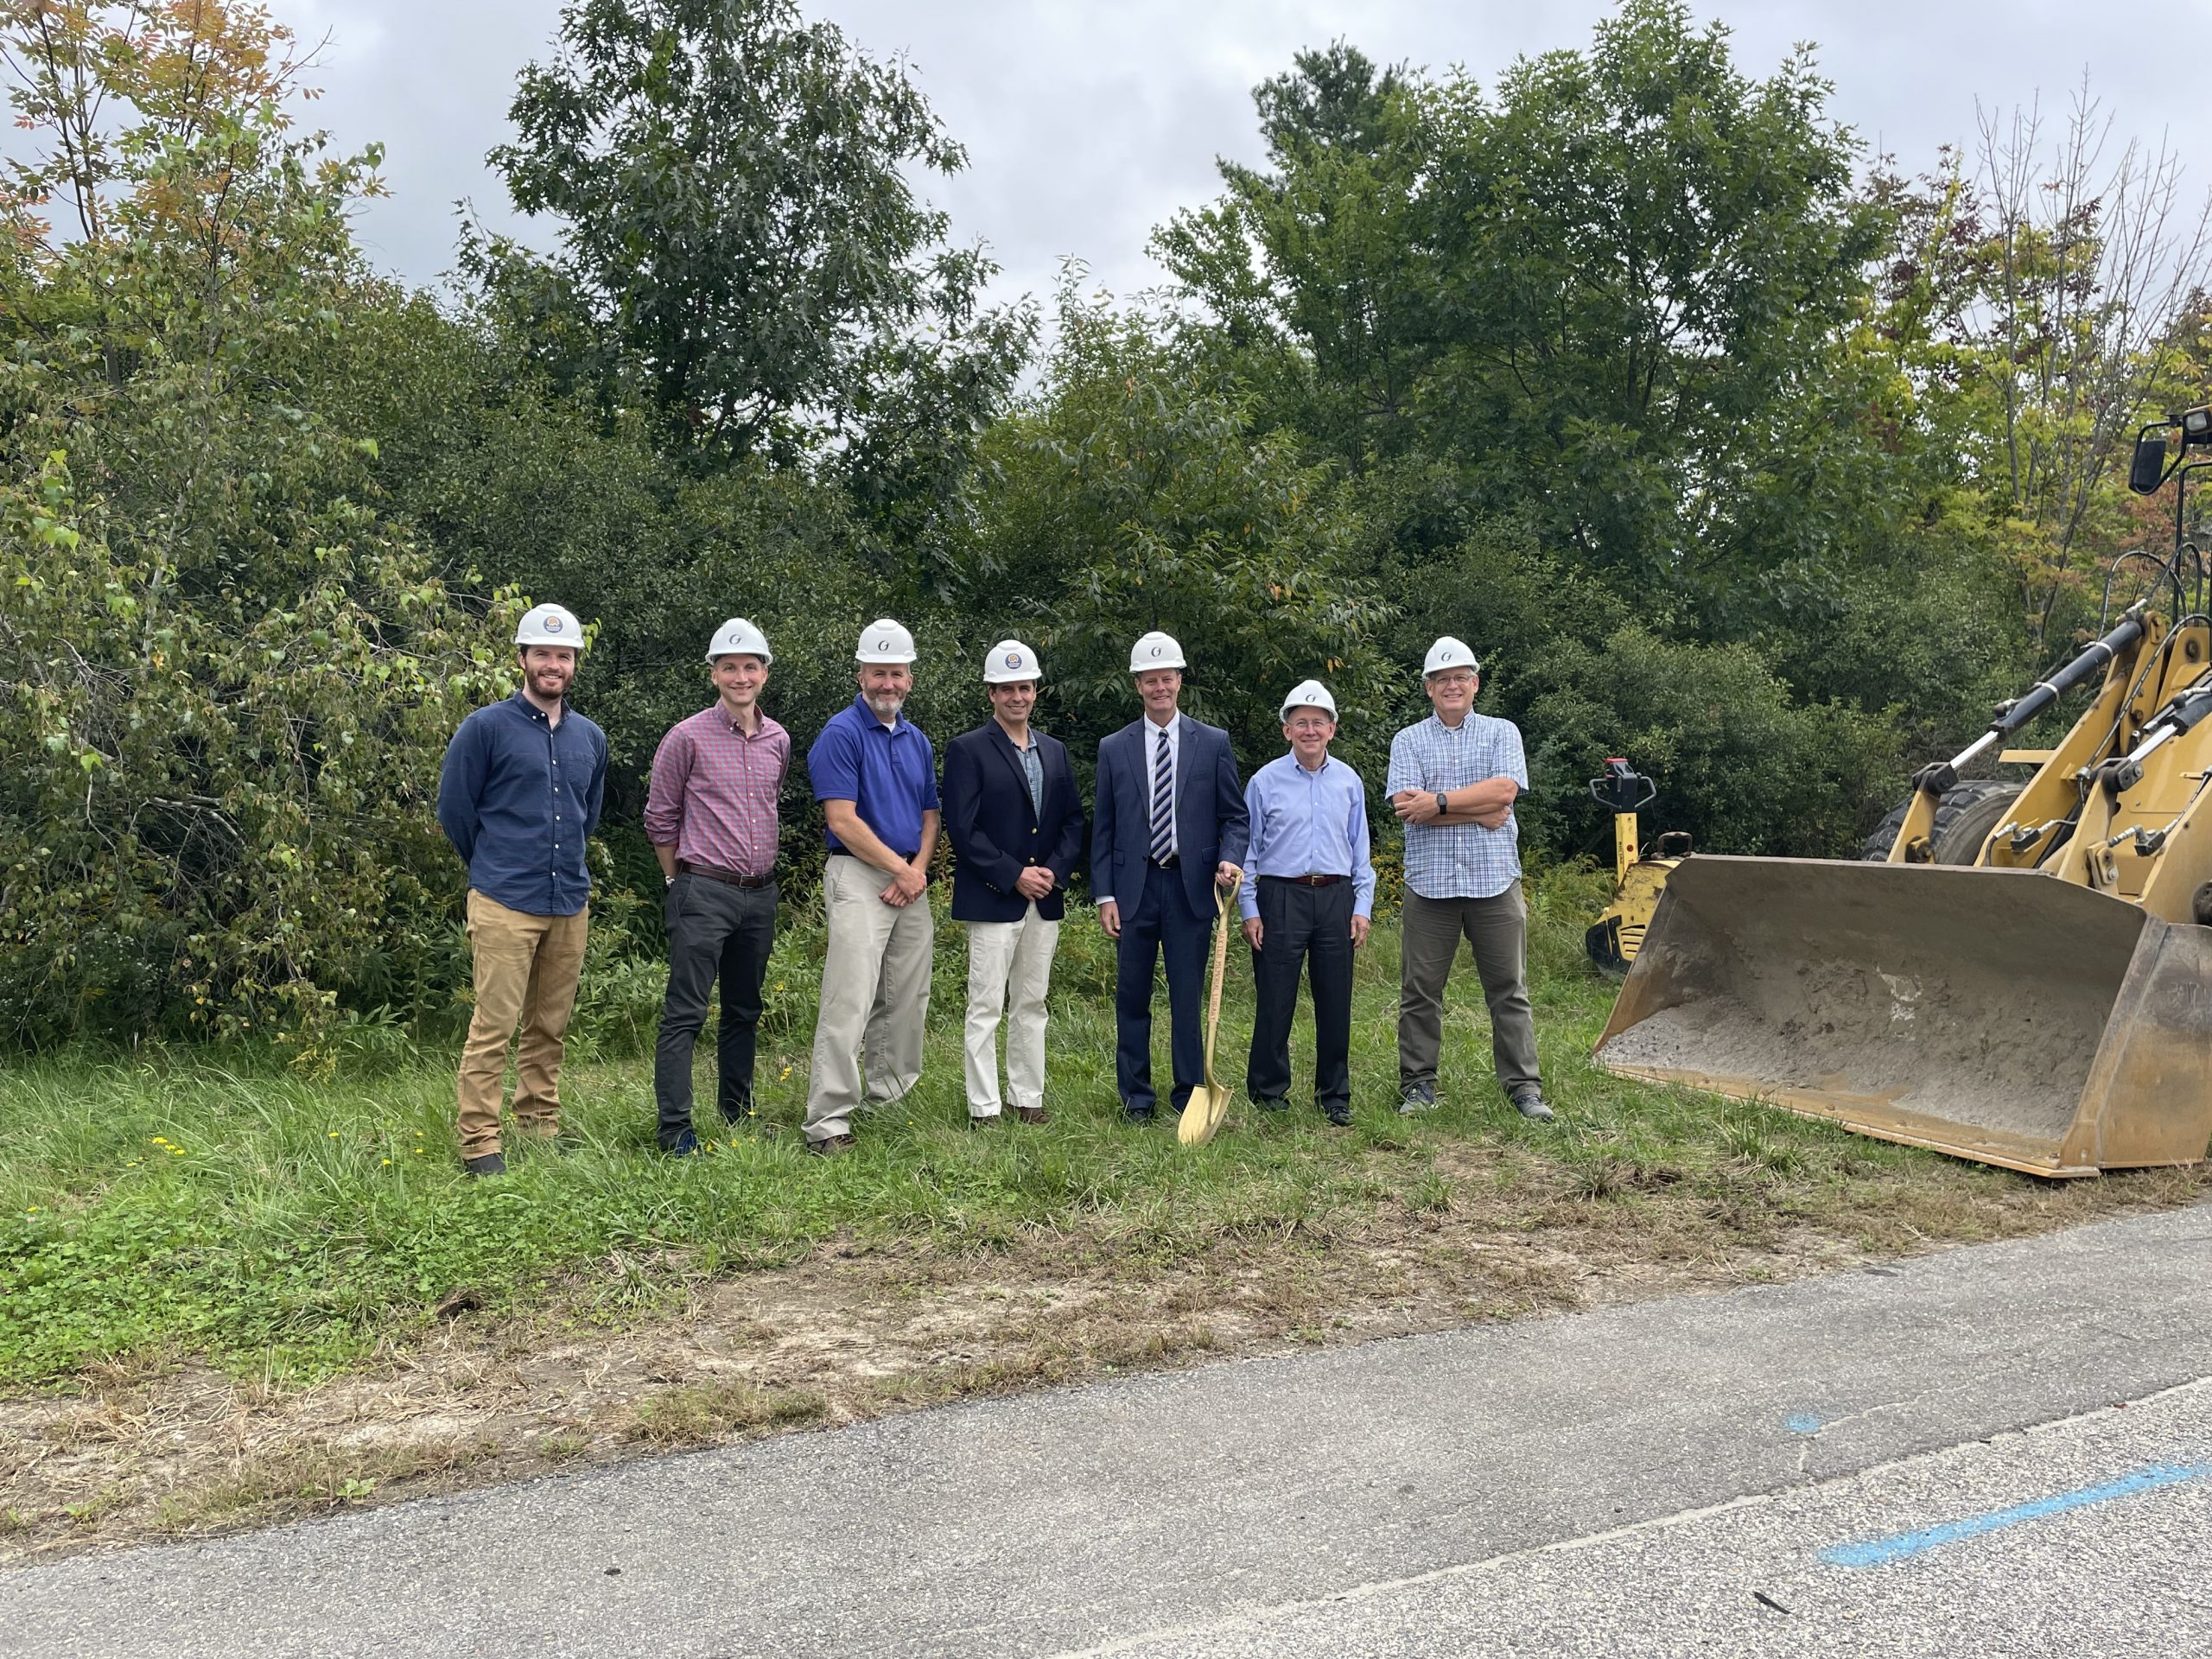 Revision Energy, Town of Gorham, and GSB at the Solar Project Groundbreaking